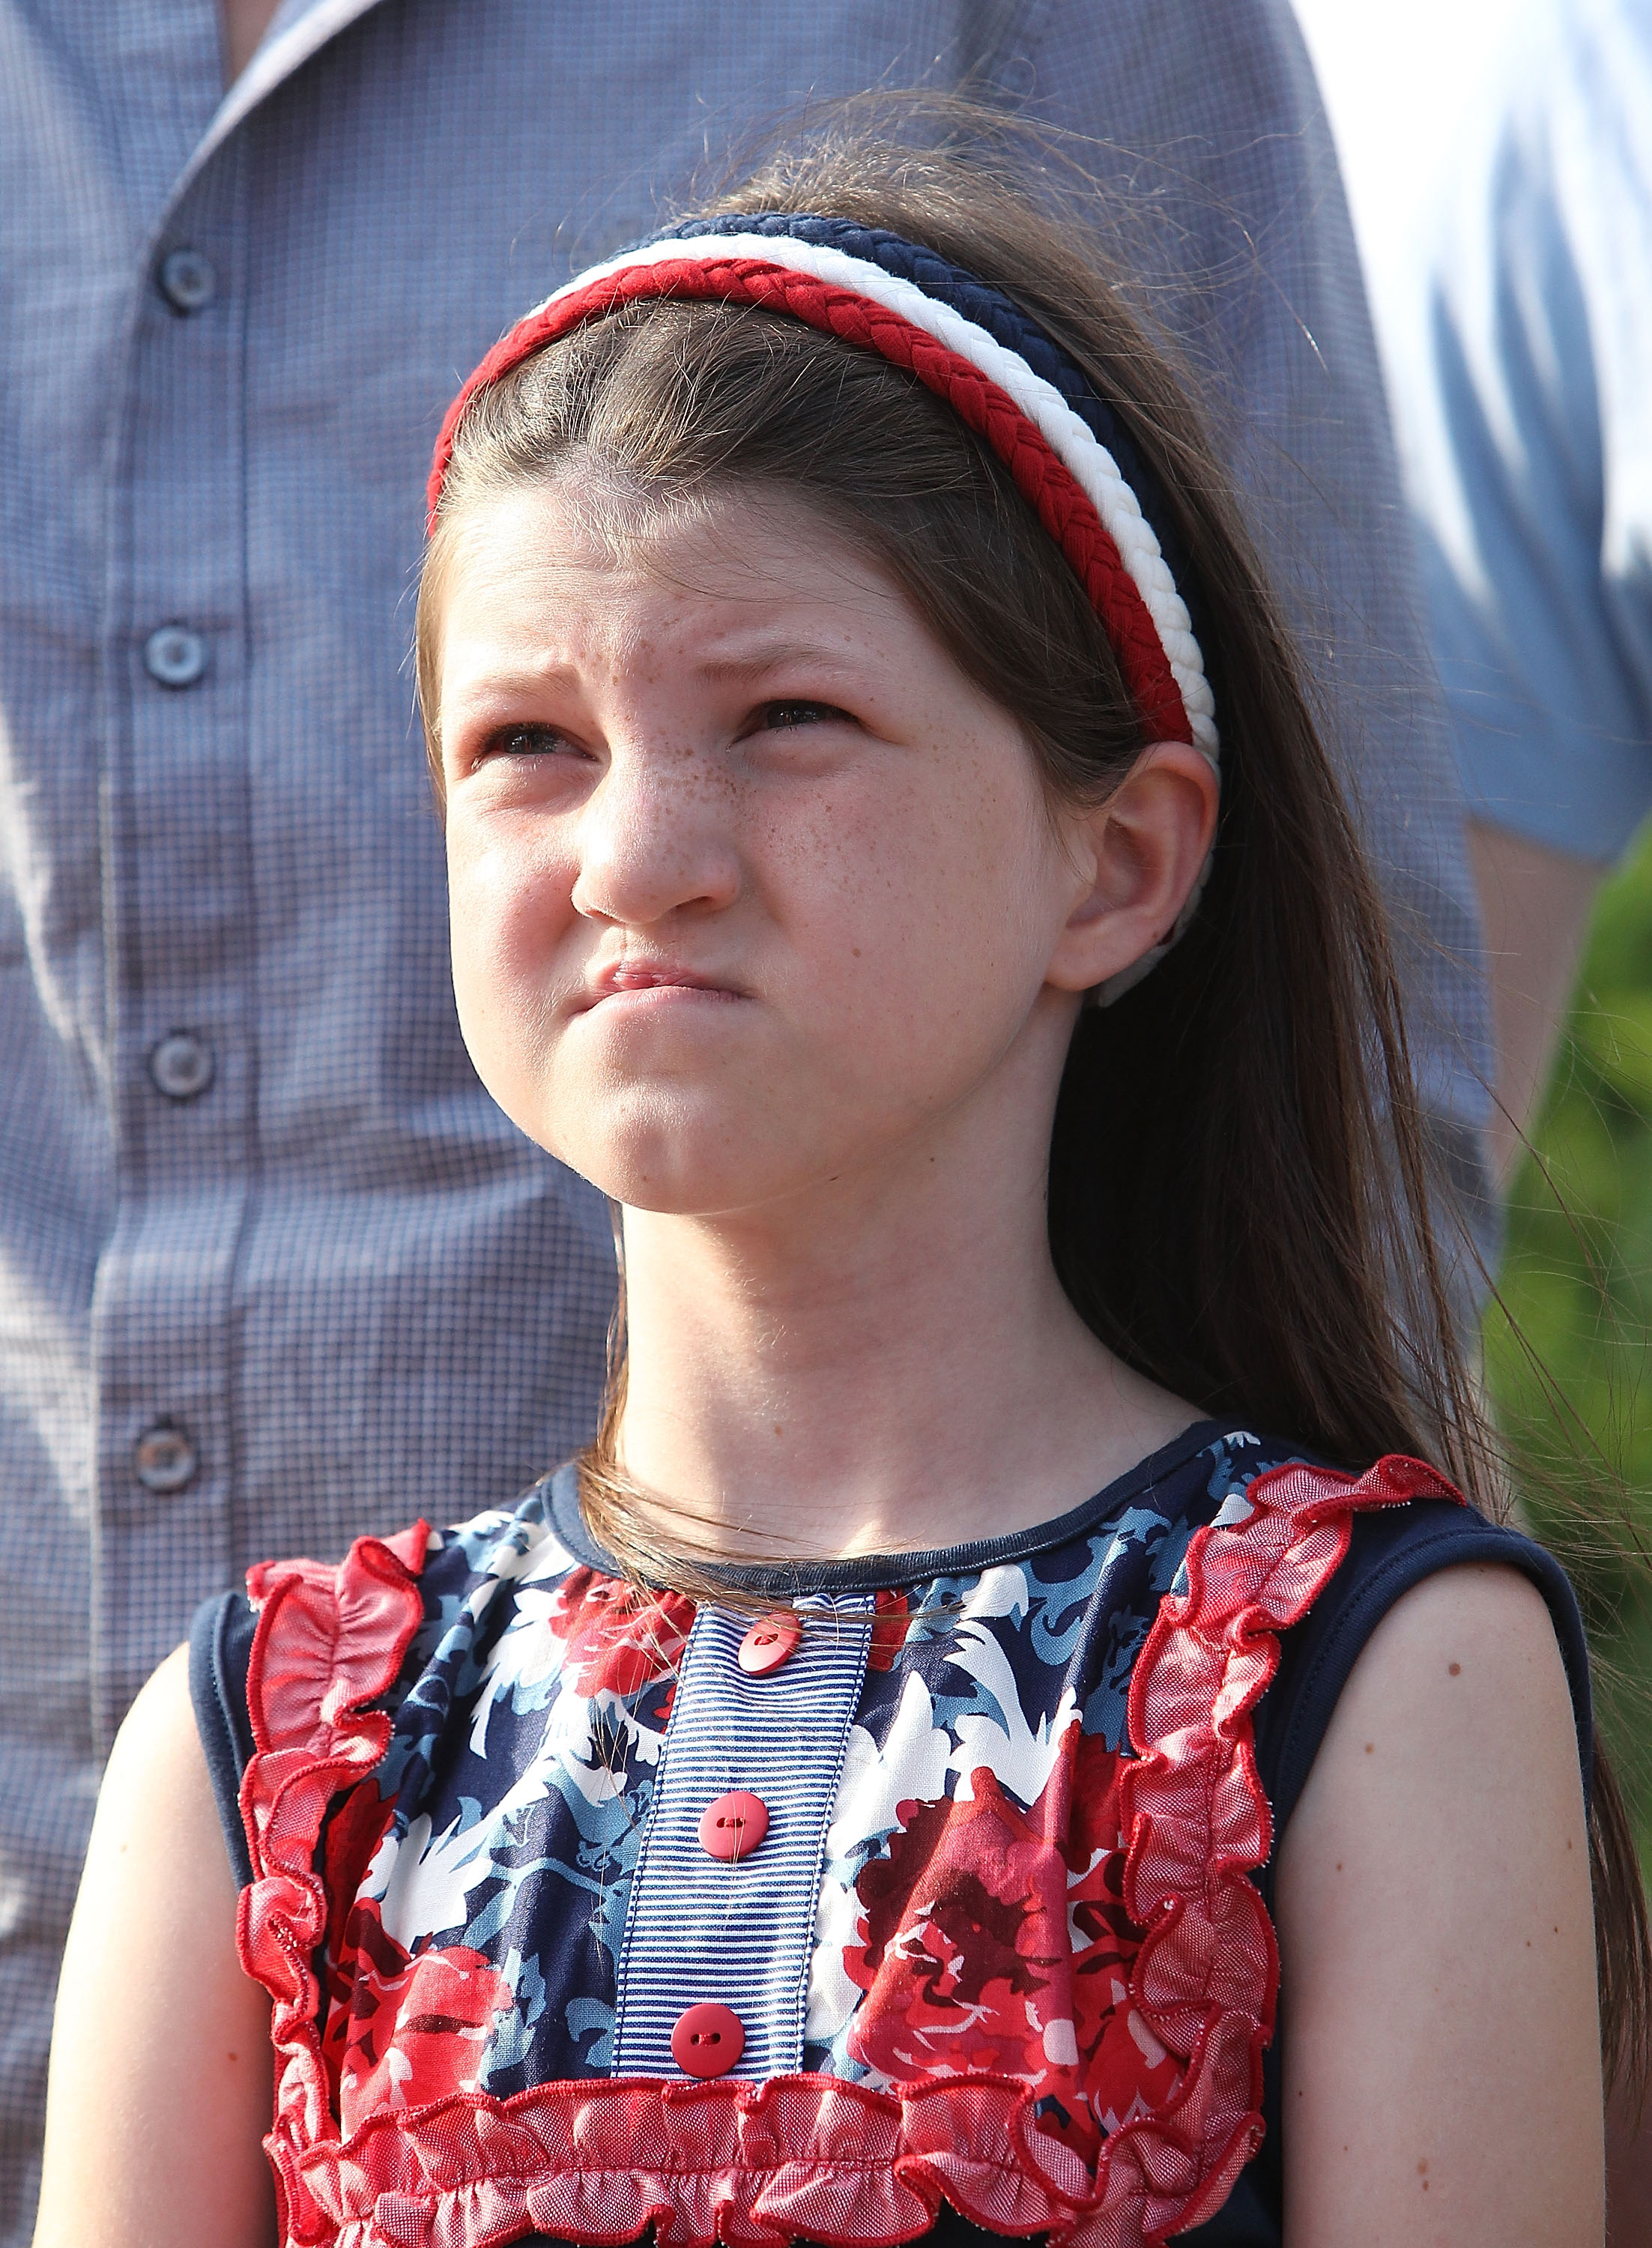 Duck Dynasty's Mia Robertson attends a press conference to raise awareness of cleft lip and palate treatments on July 8, 2014 at the U.S. Capitol Building in Washington.